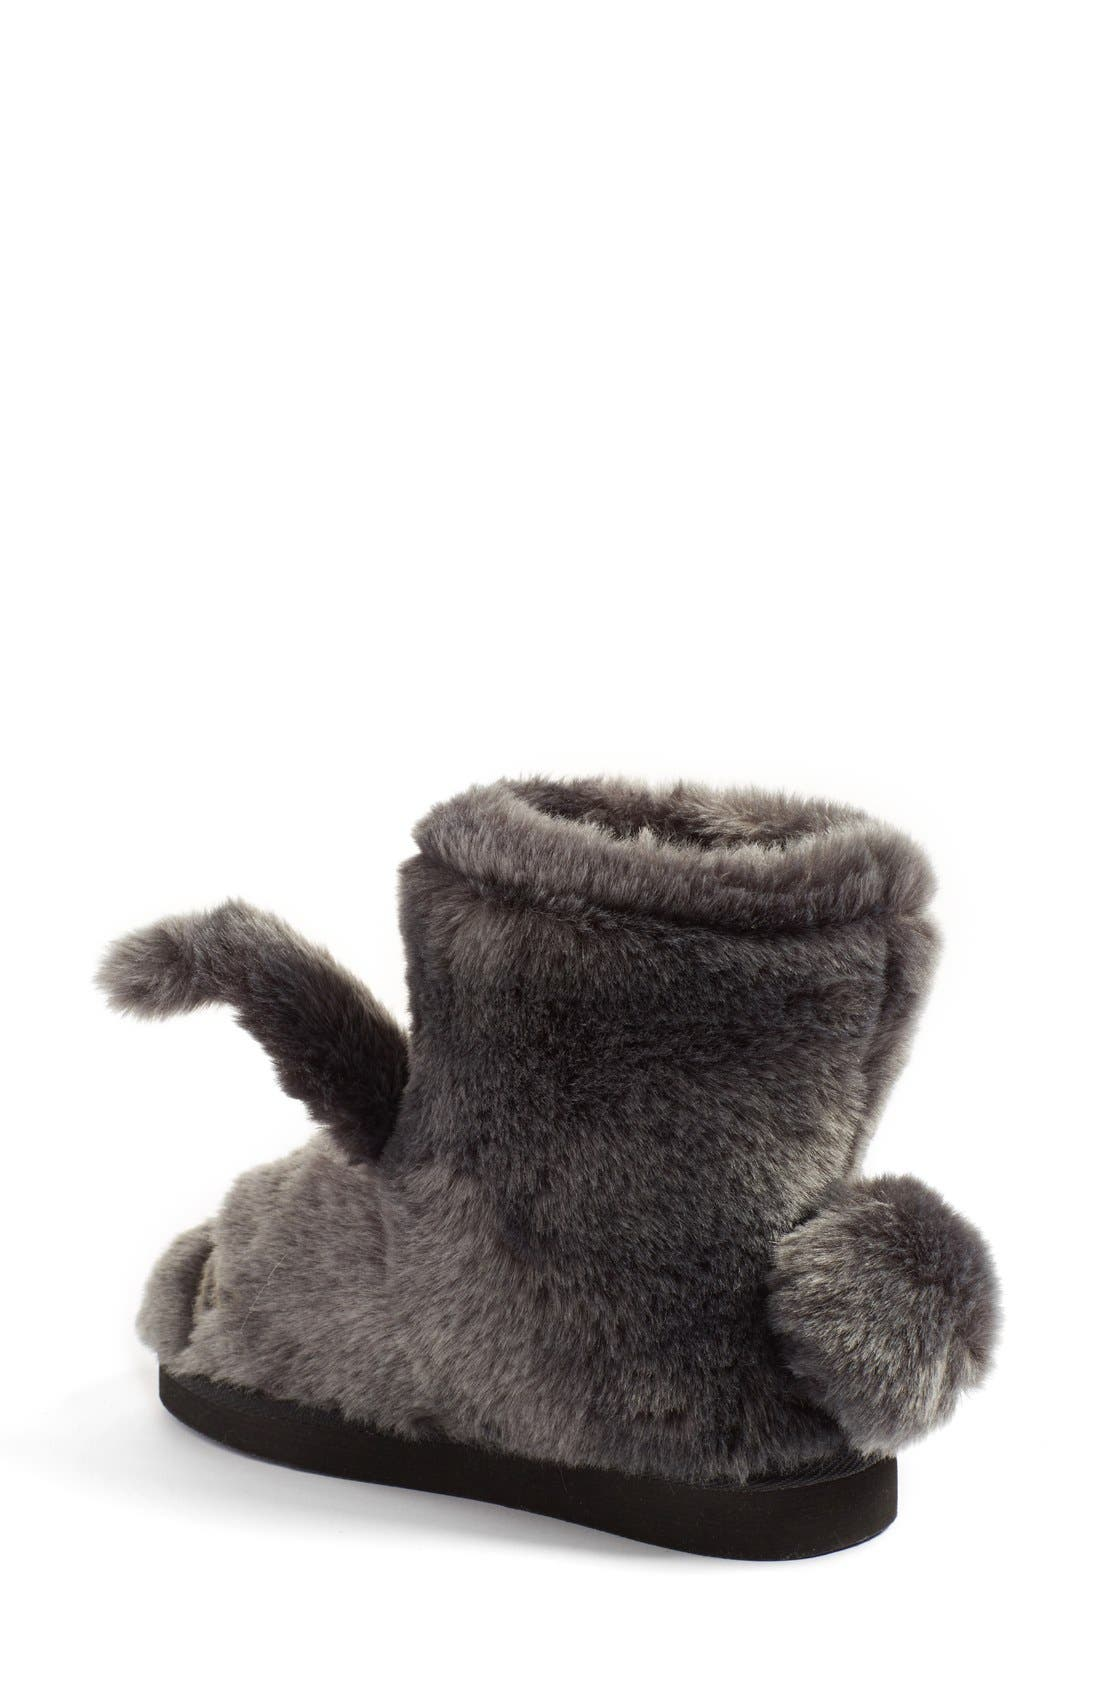 KATE SPADE NEW YORK,                             'bethie' faux fur bunny slipper,                             Alternate thumbnail 2, color,                             034